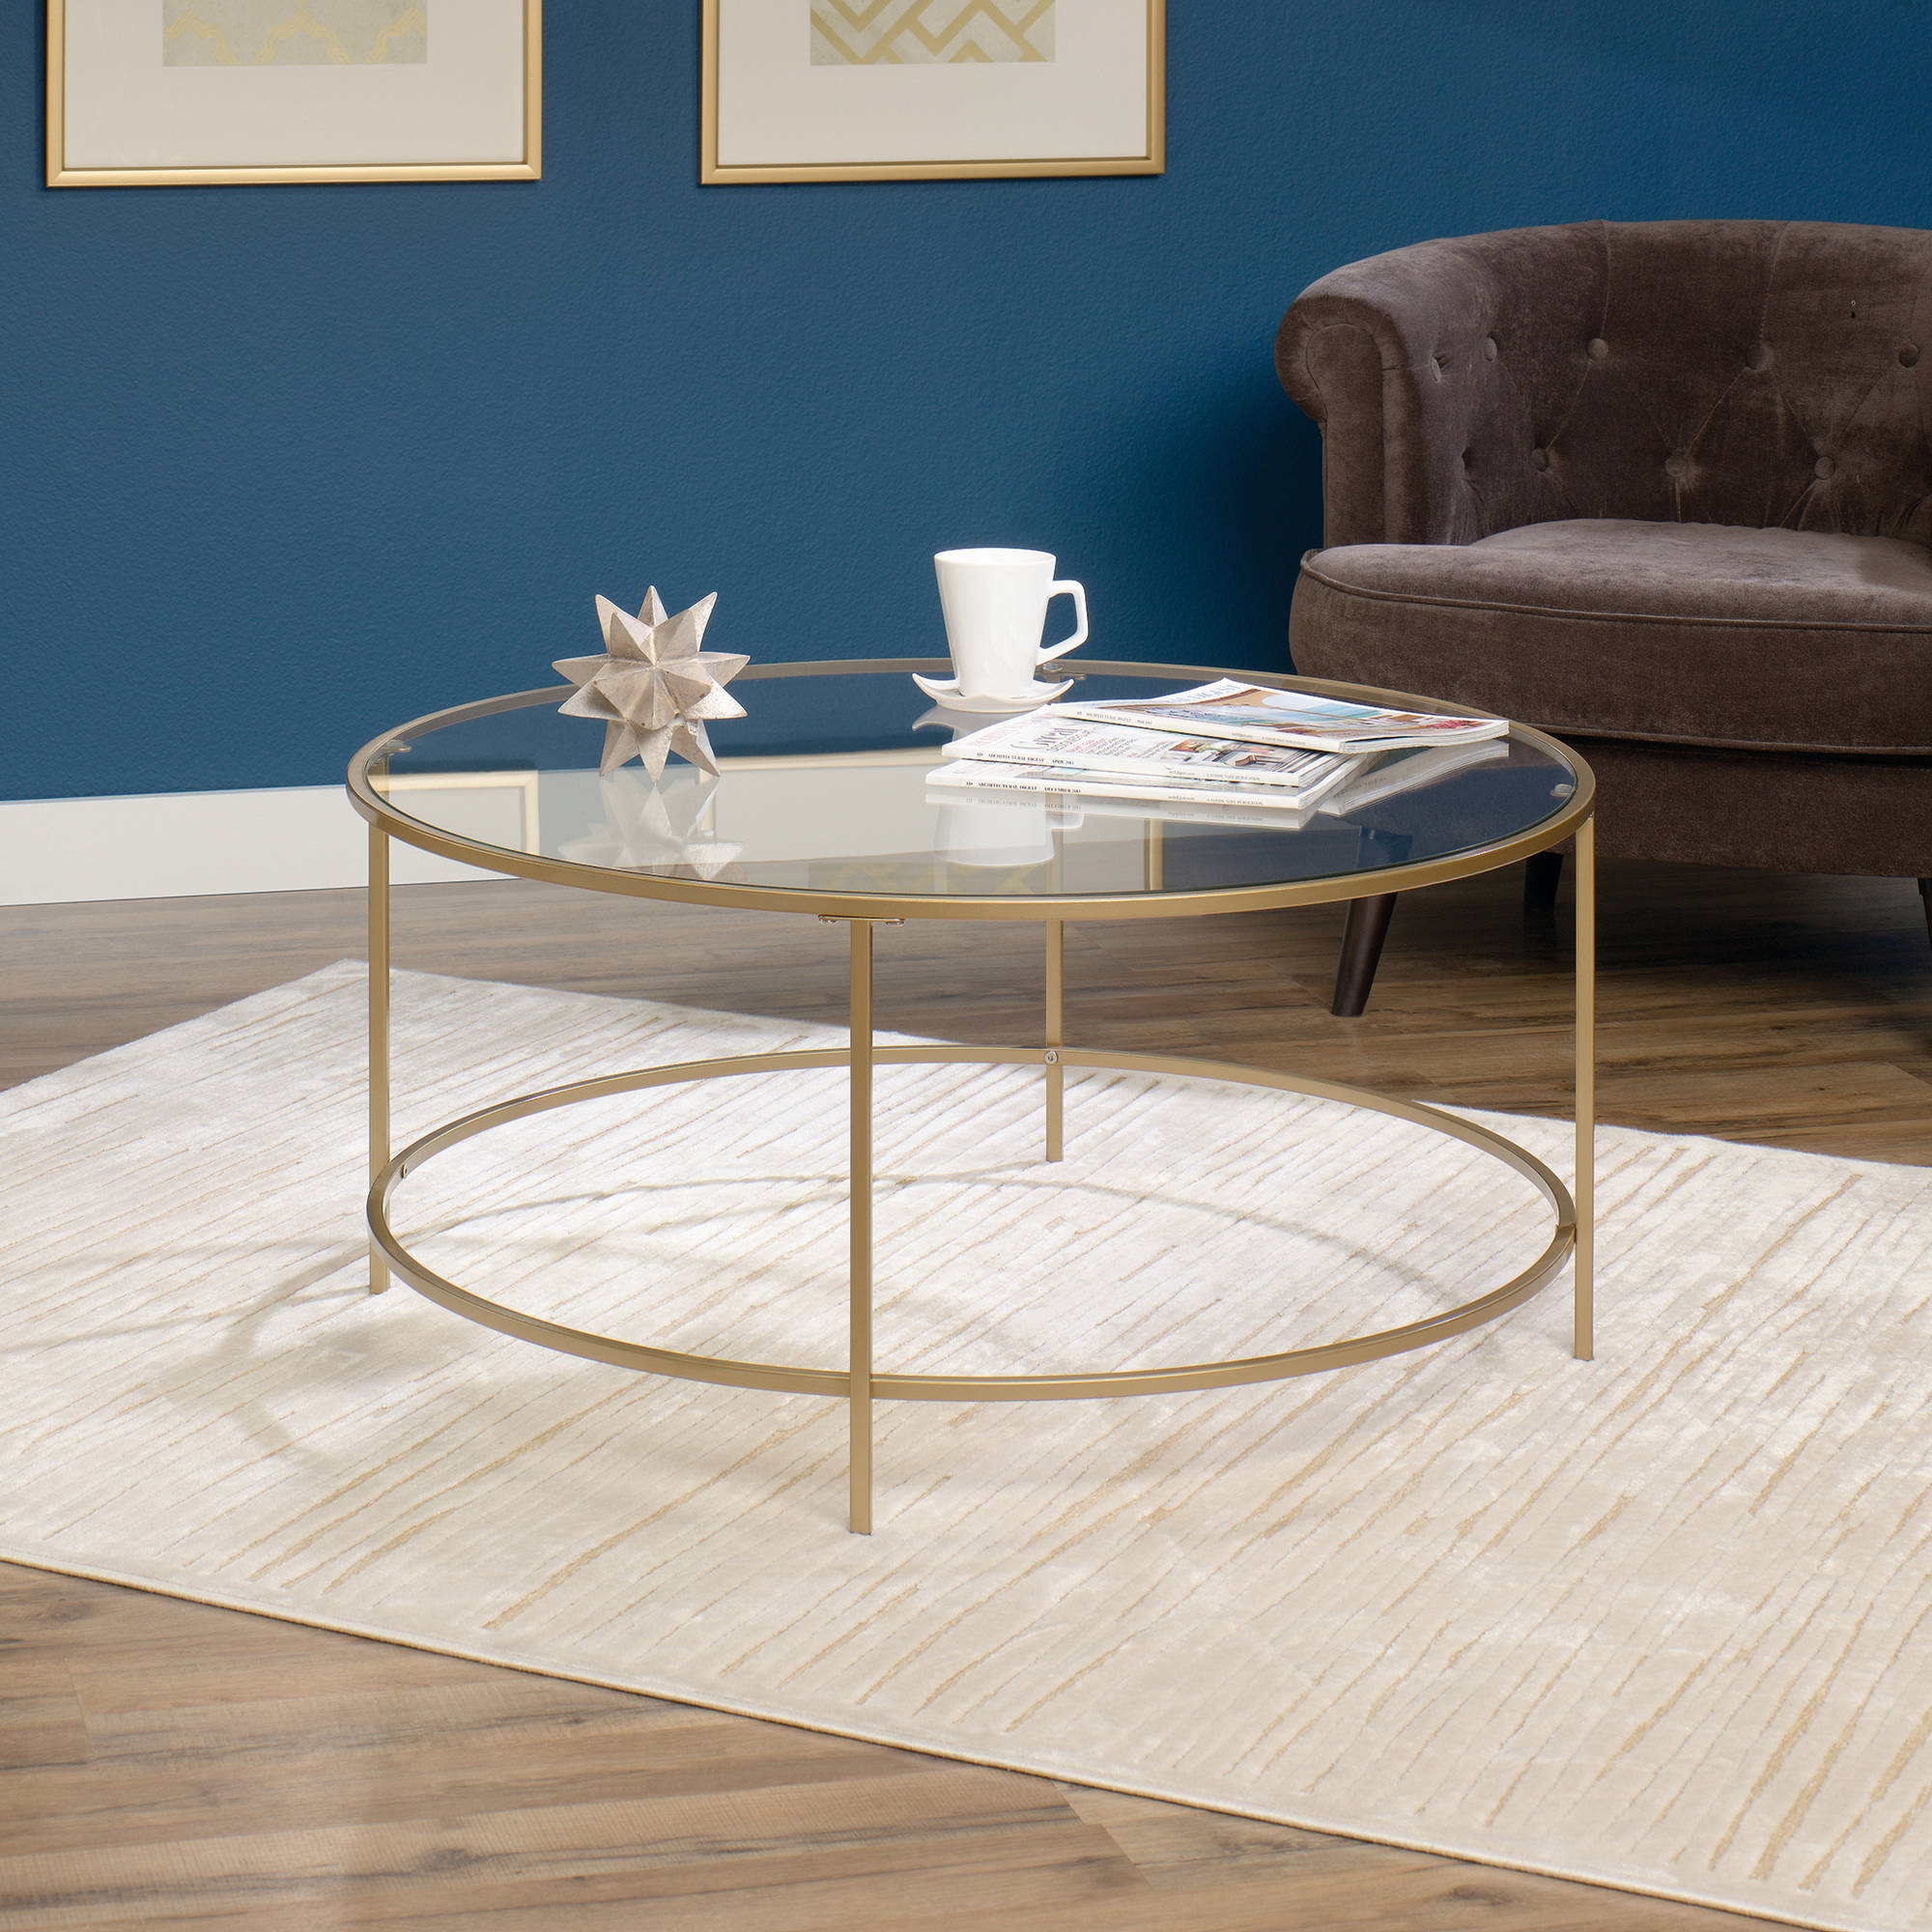 Sauder International Lux Round Coffee Table, Satin Gold